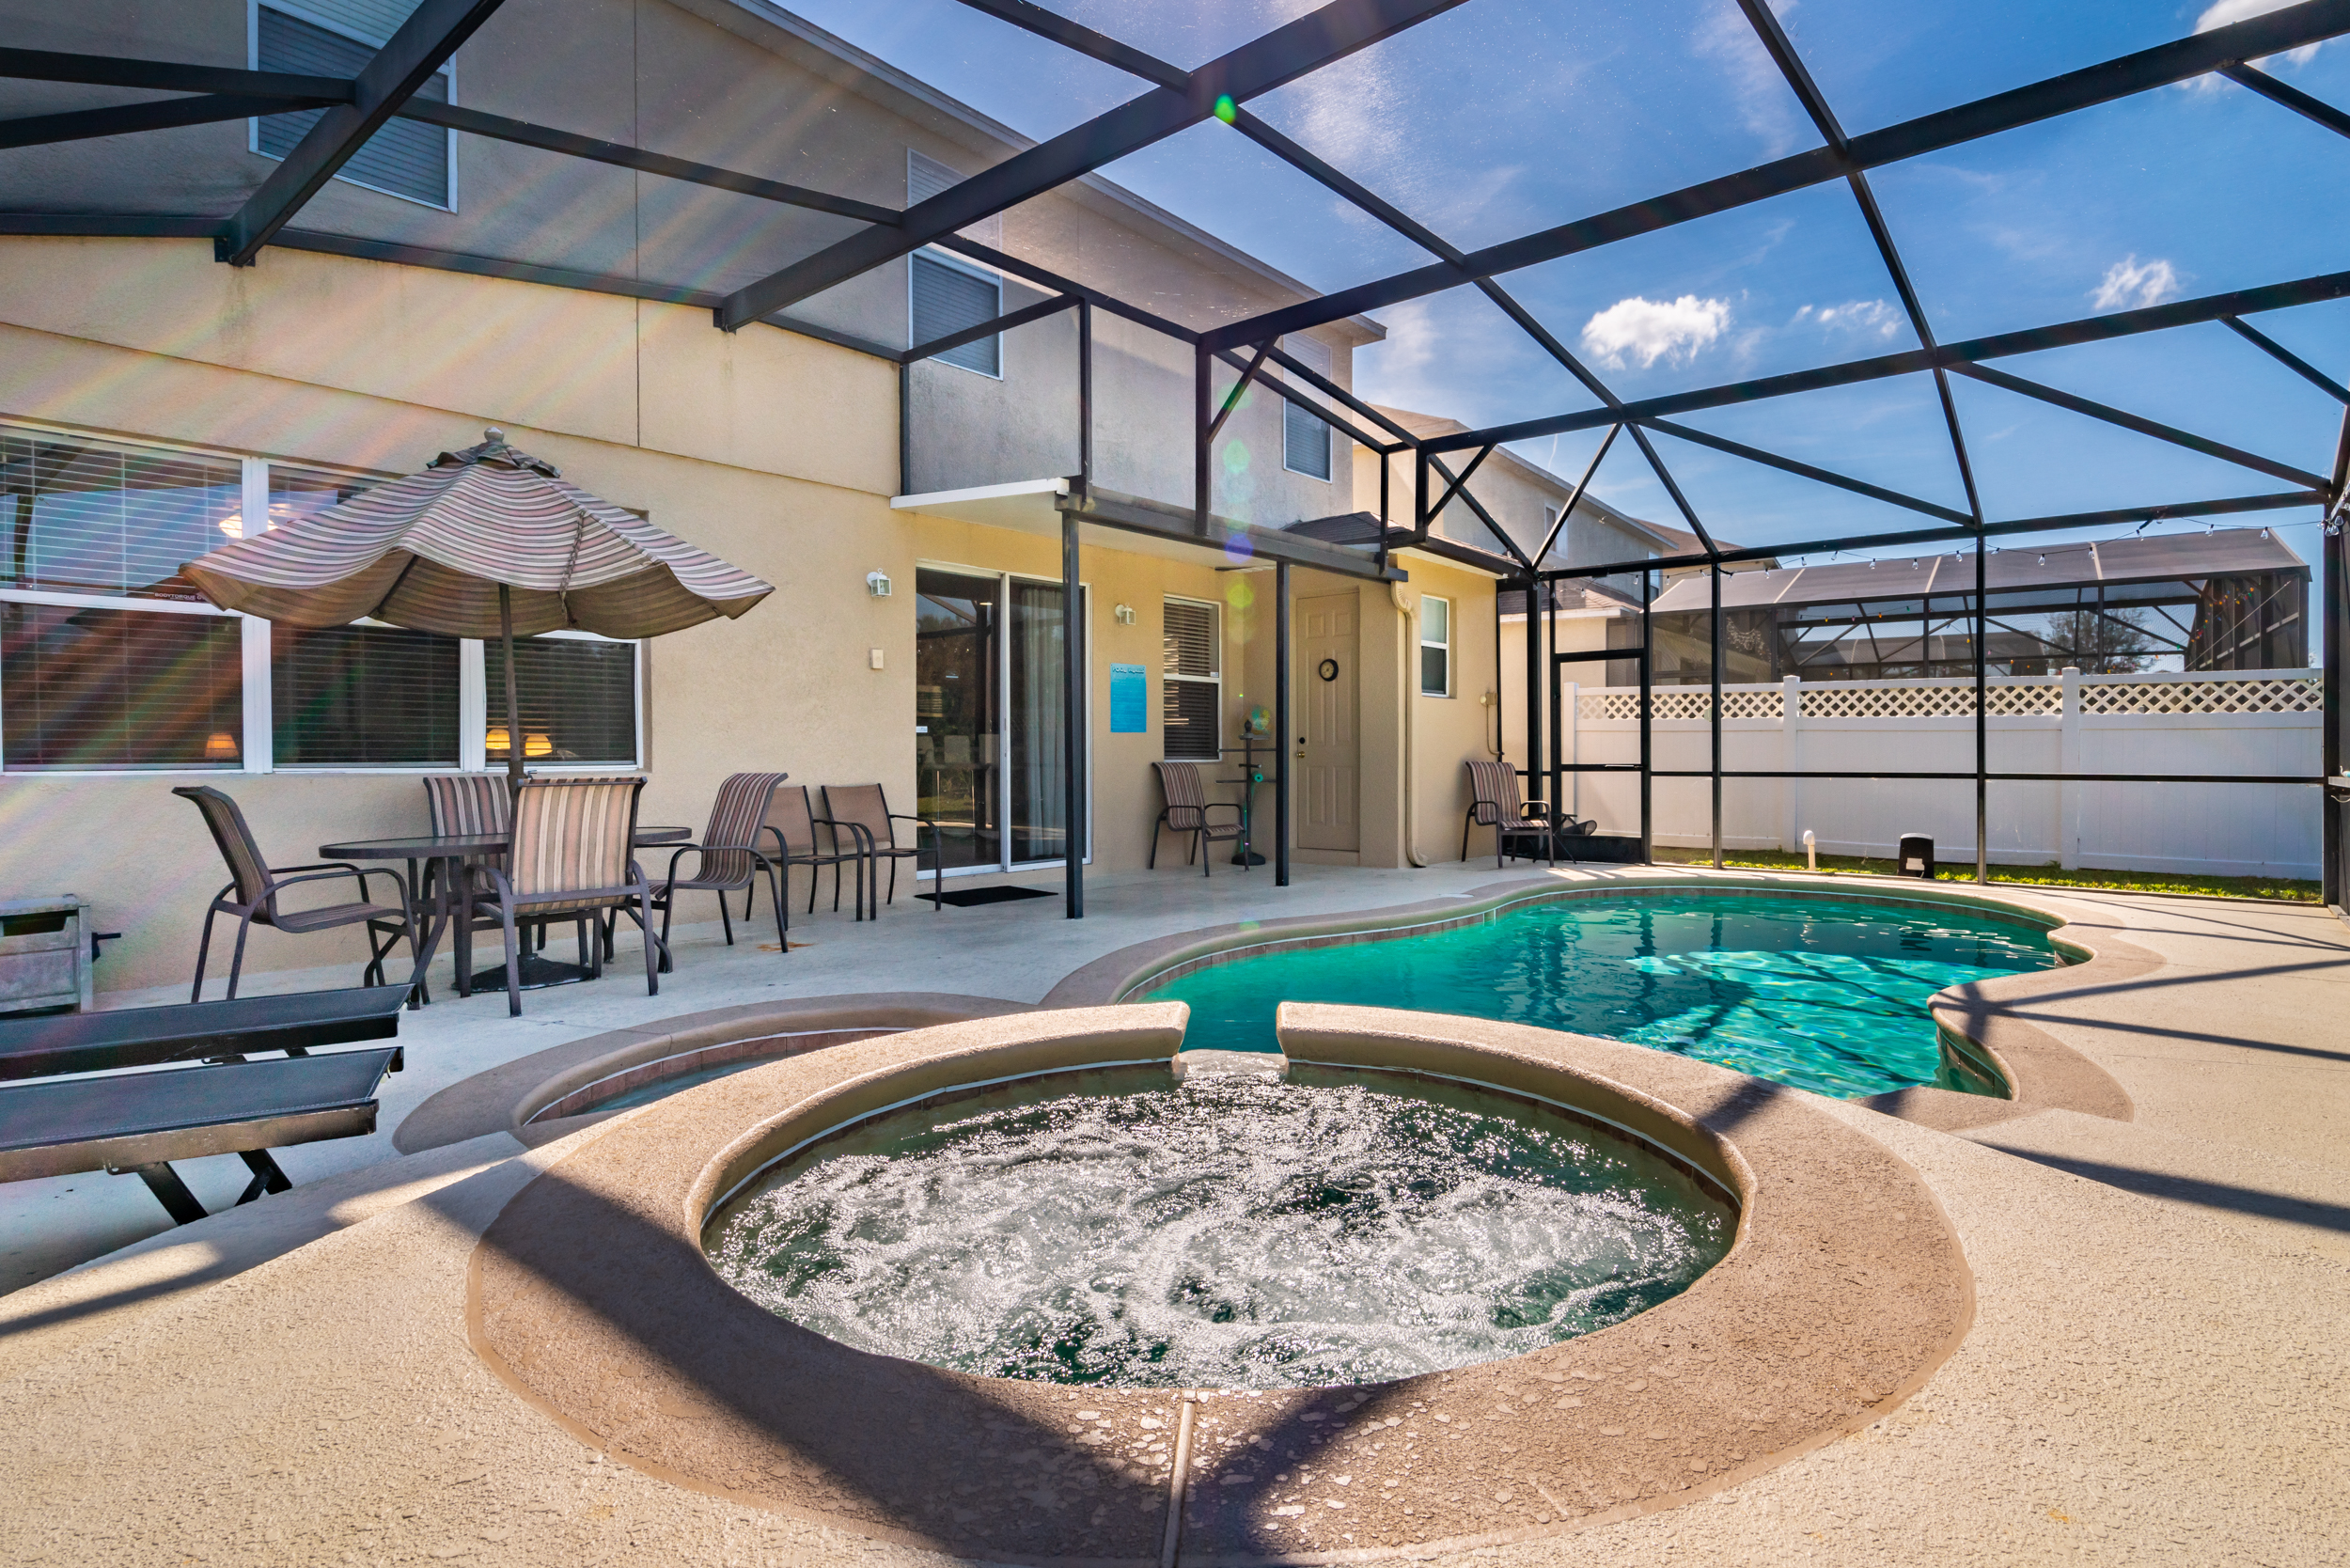 Pool area showing hot tub